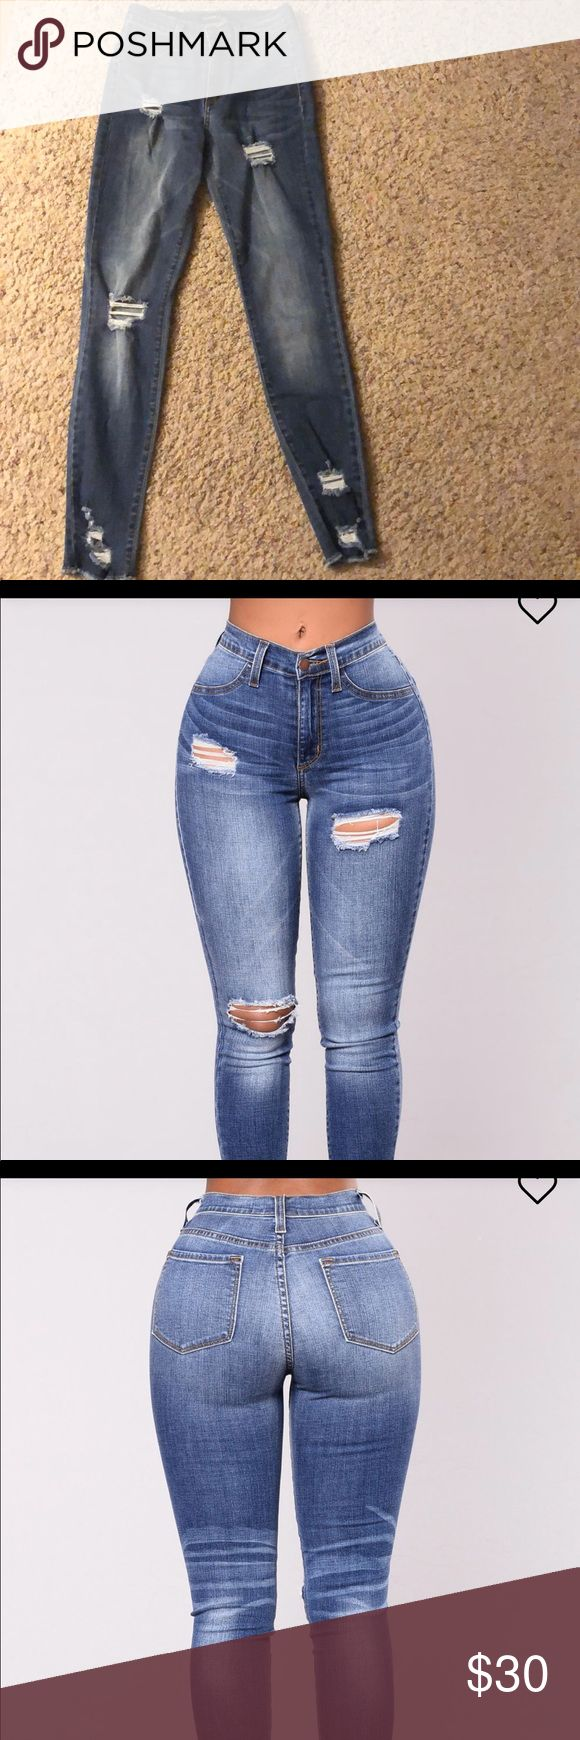 Fashion Nova jeans new with tags Fashion Nova jeans new with tags attached. Size 3. Perfect never used. Super cute . I added the pics from the website because the lighting in my photos didn't show true color. Fashion Nova Jeans